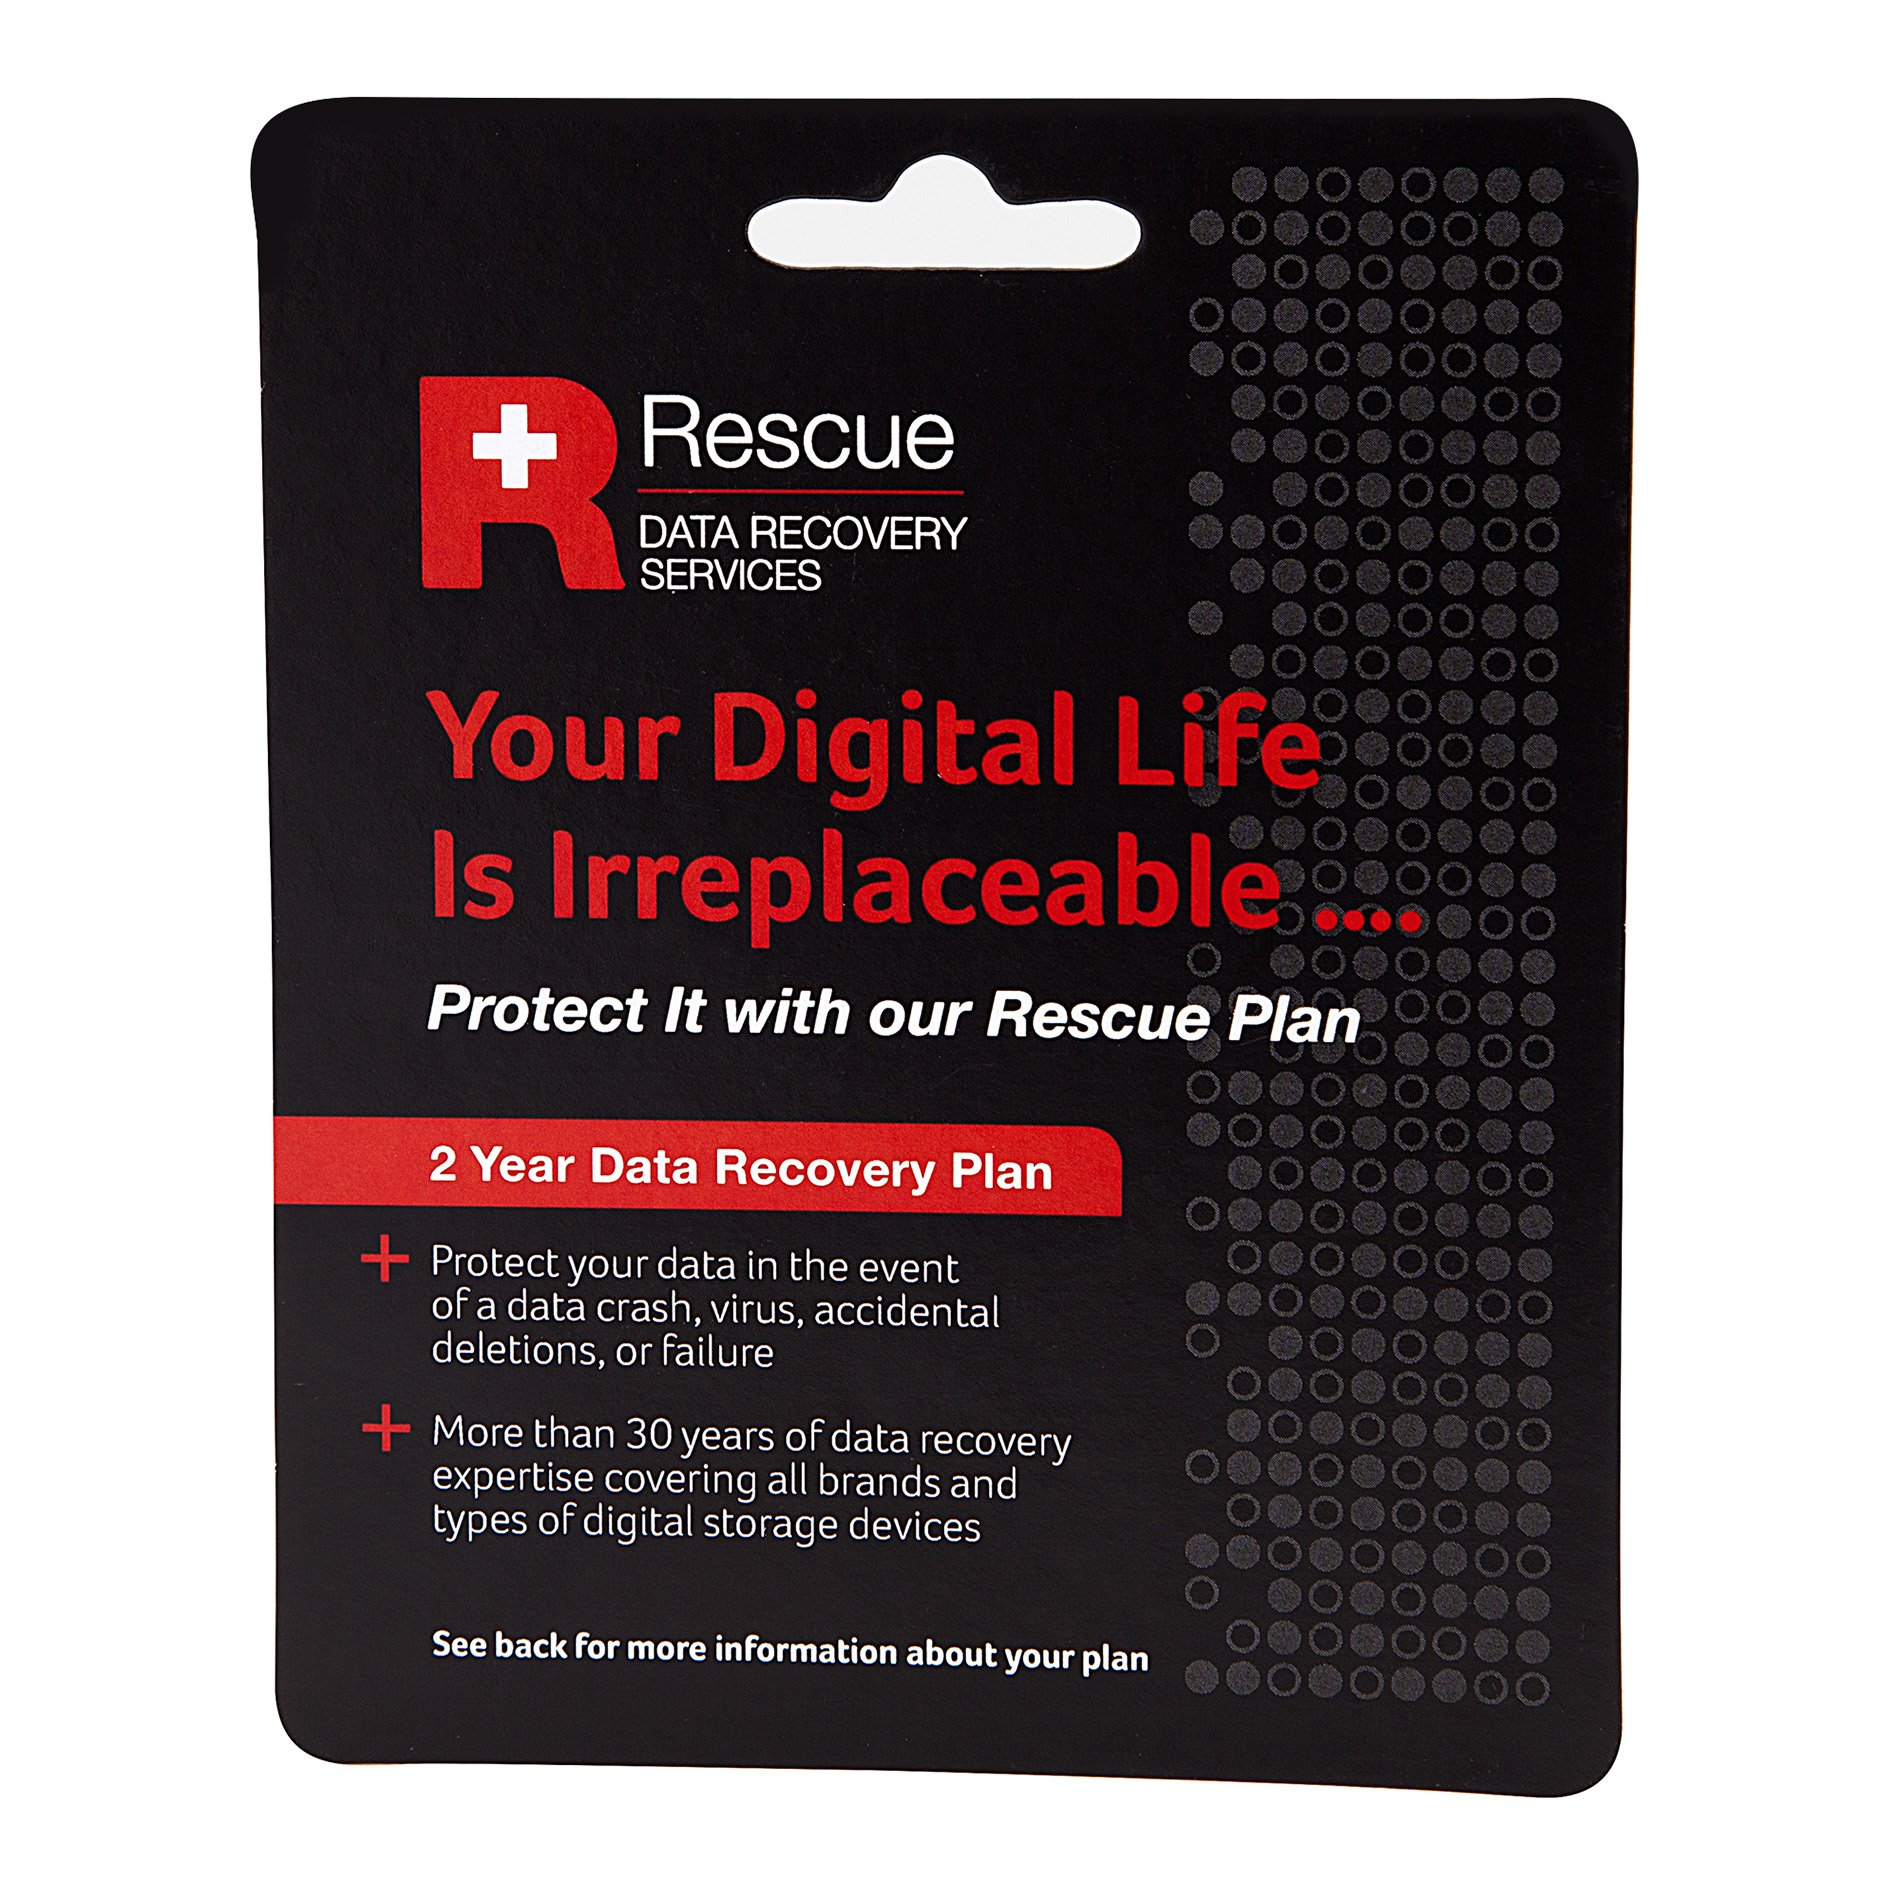 Seagate 2Yr Data Recovery SVC Plan Ehds All HDD and SSD